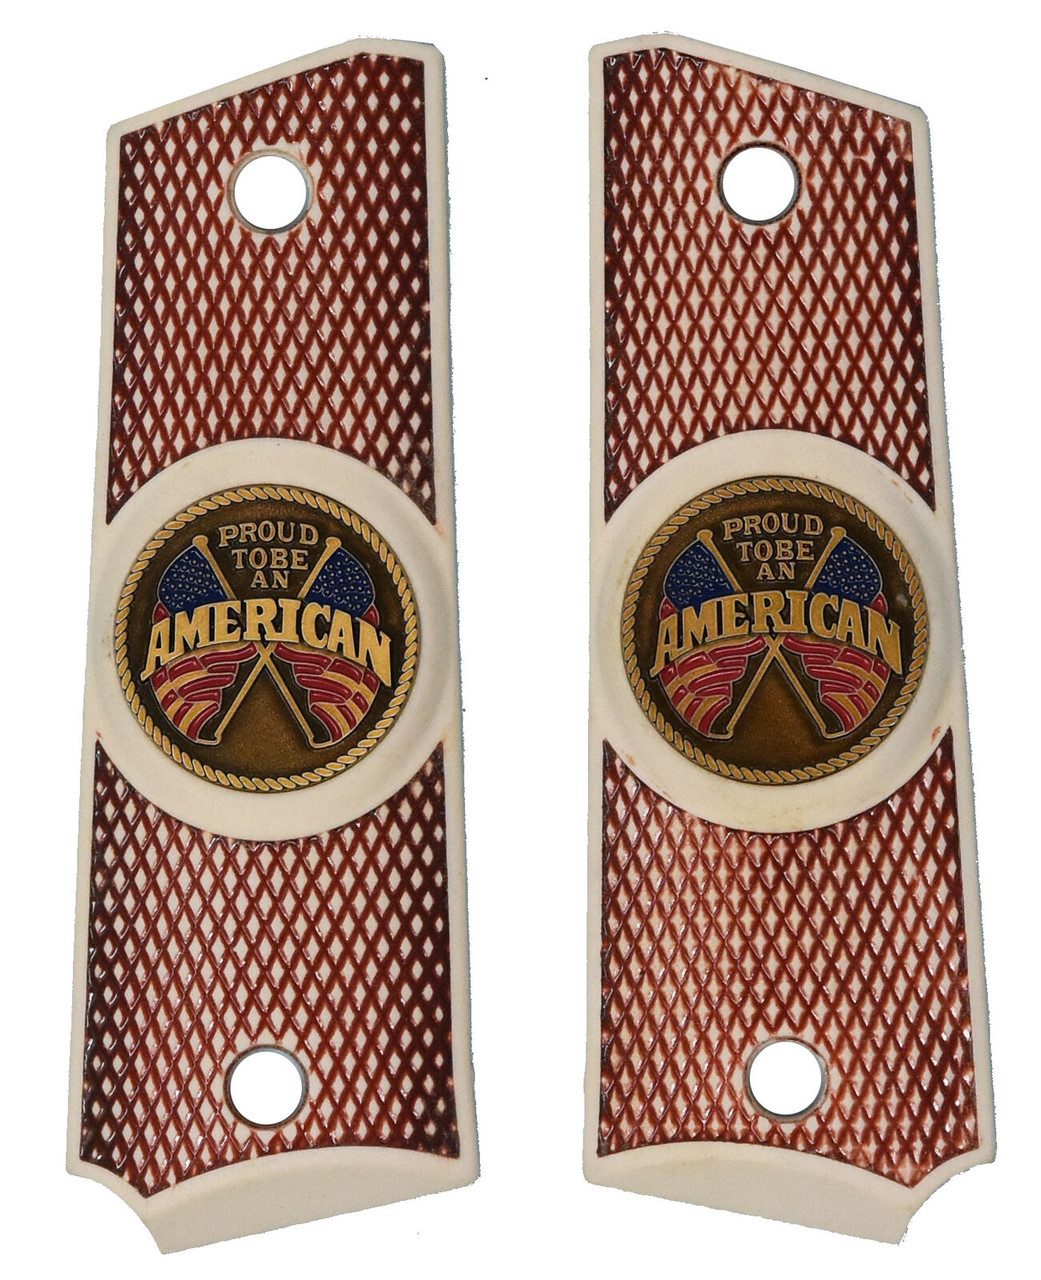 Garrison Grip 1911 Colt Full Size and Clones with PROUD TO BE AN AMERICAN Medallion Set in Faux Bone RED Color Polymer Grips